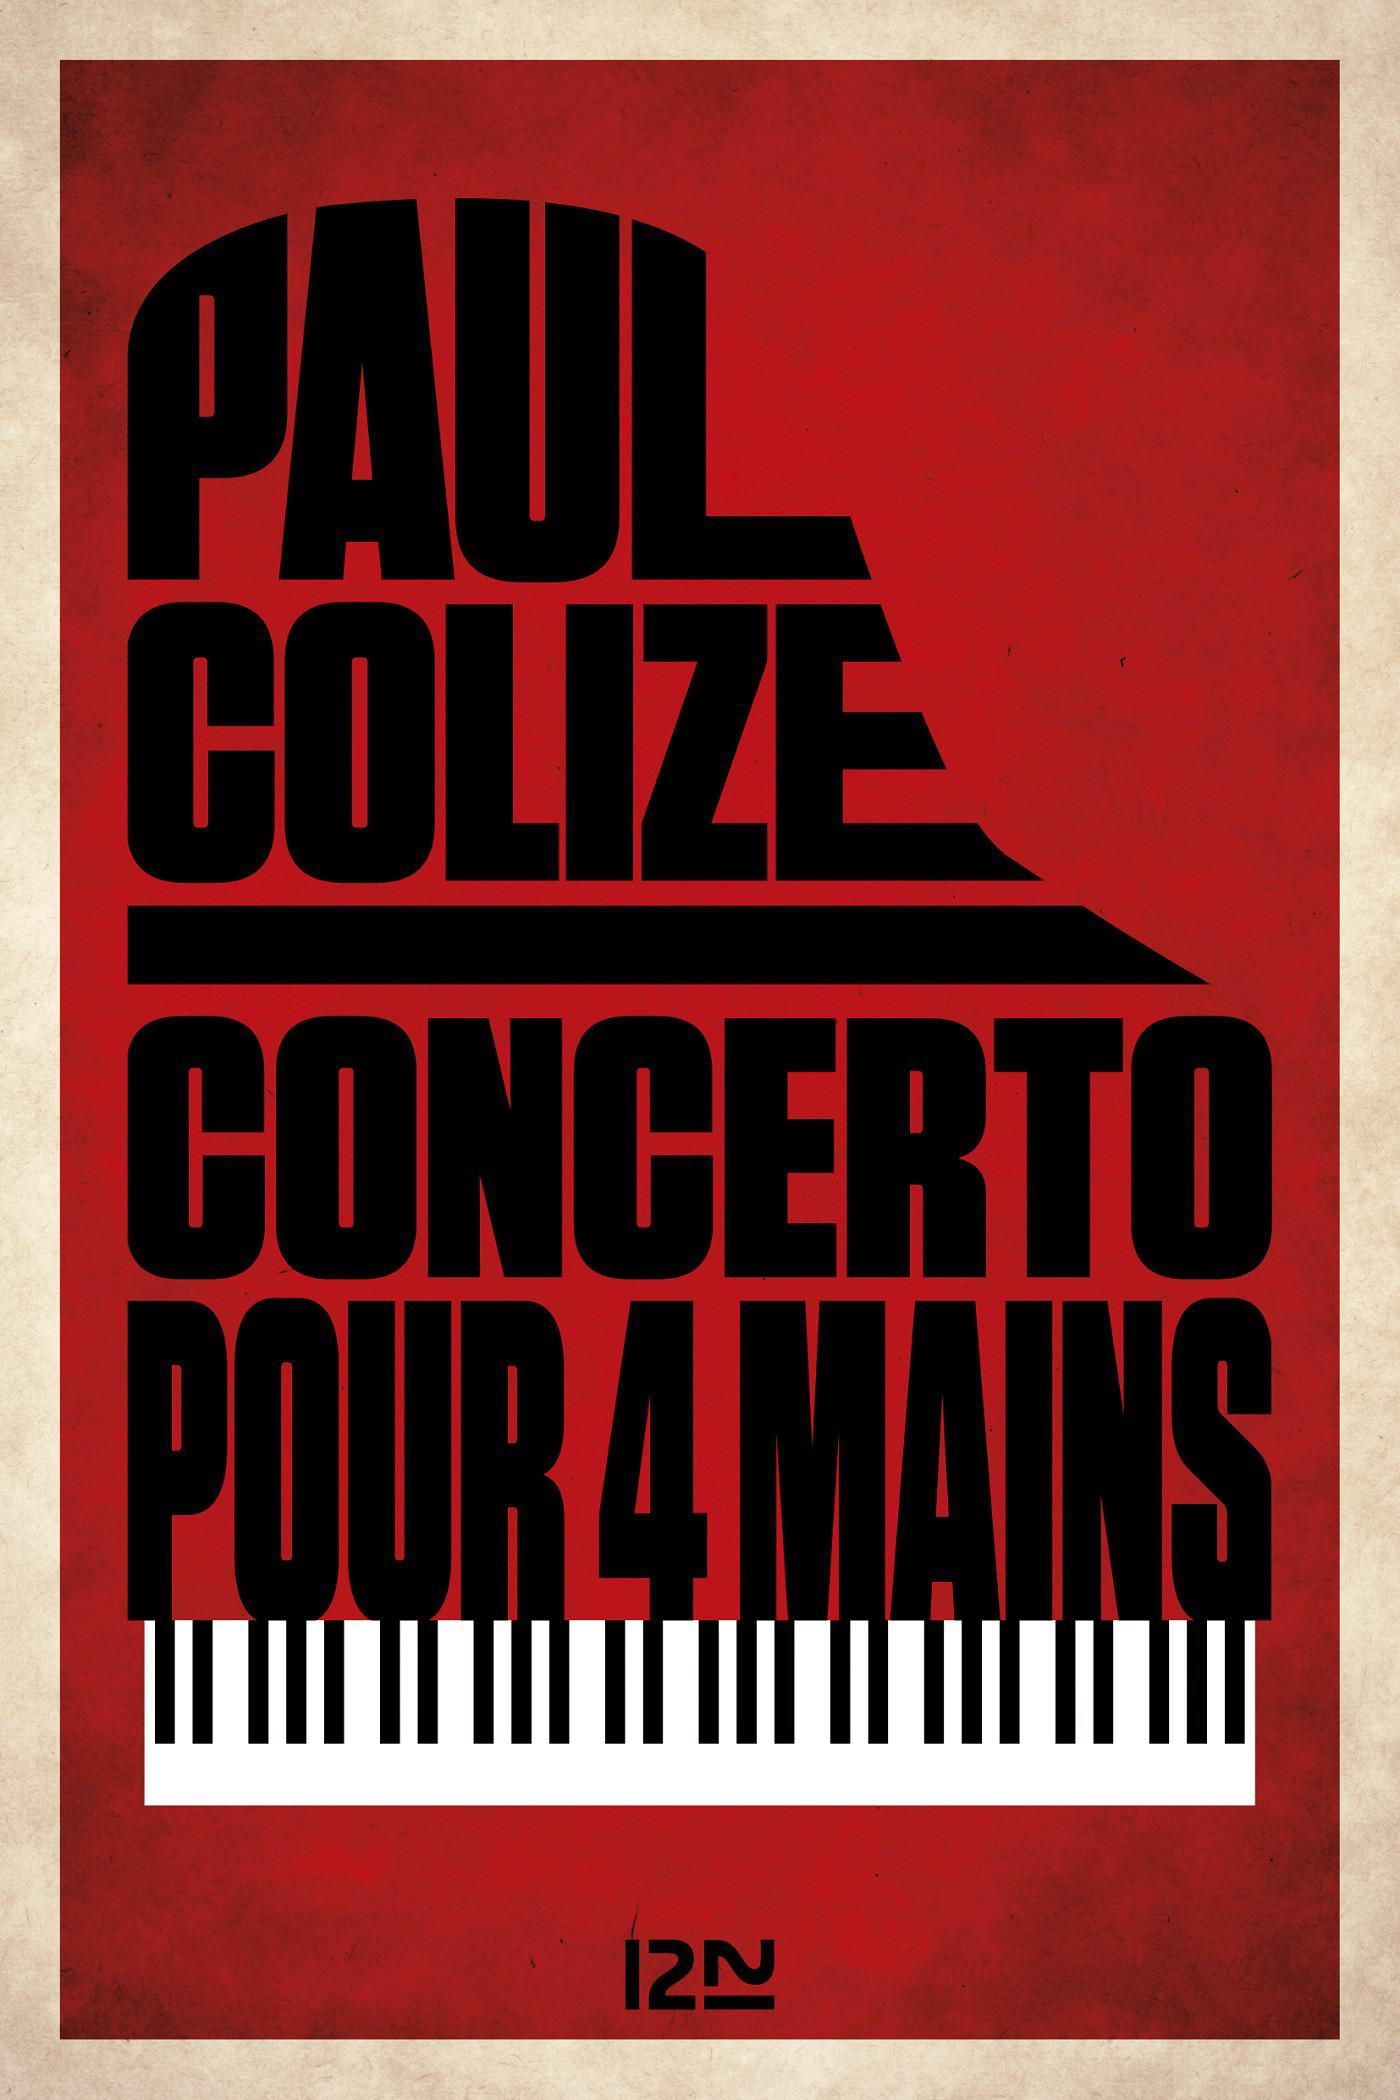 Paul Colize - Concerto pour quatre mains